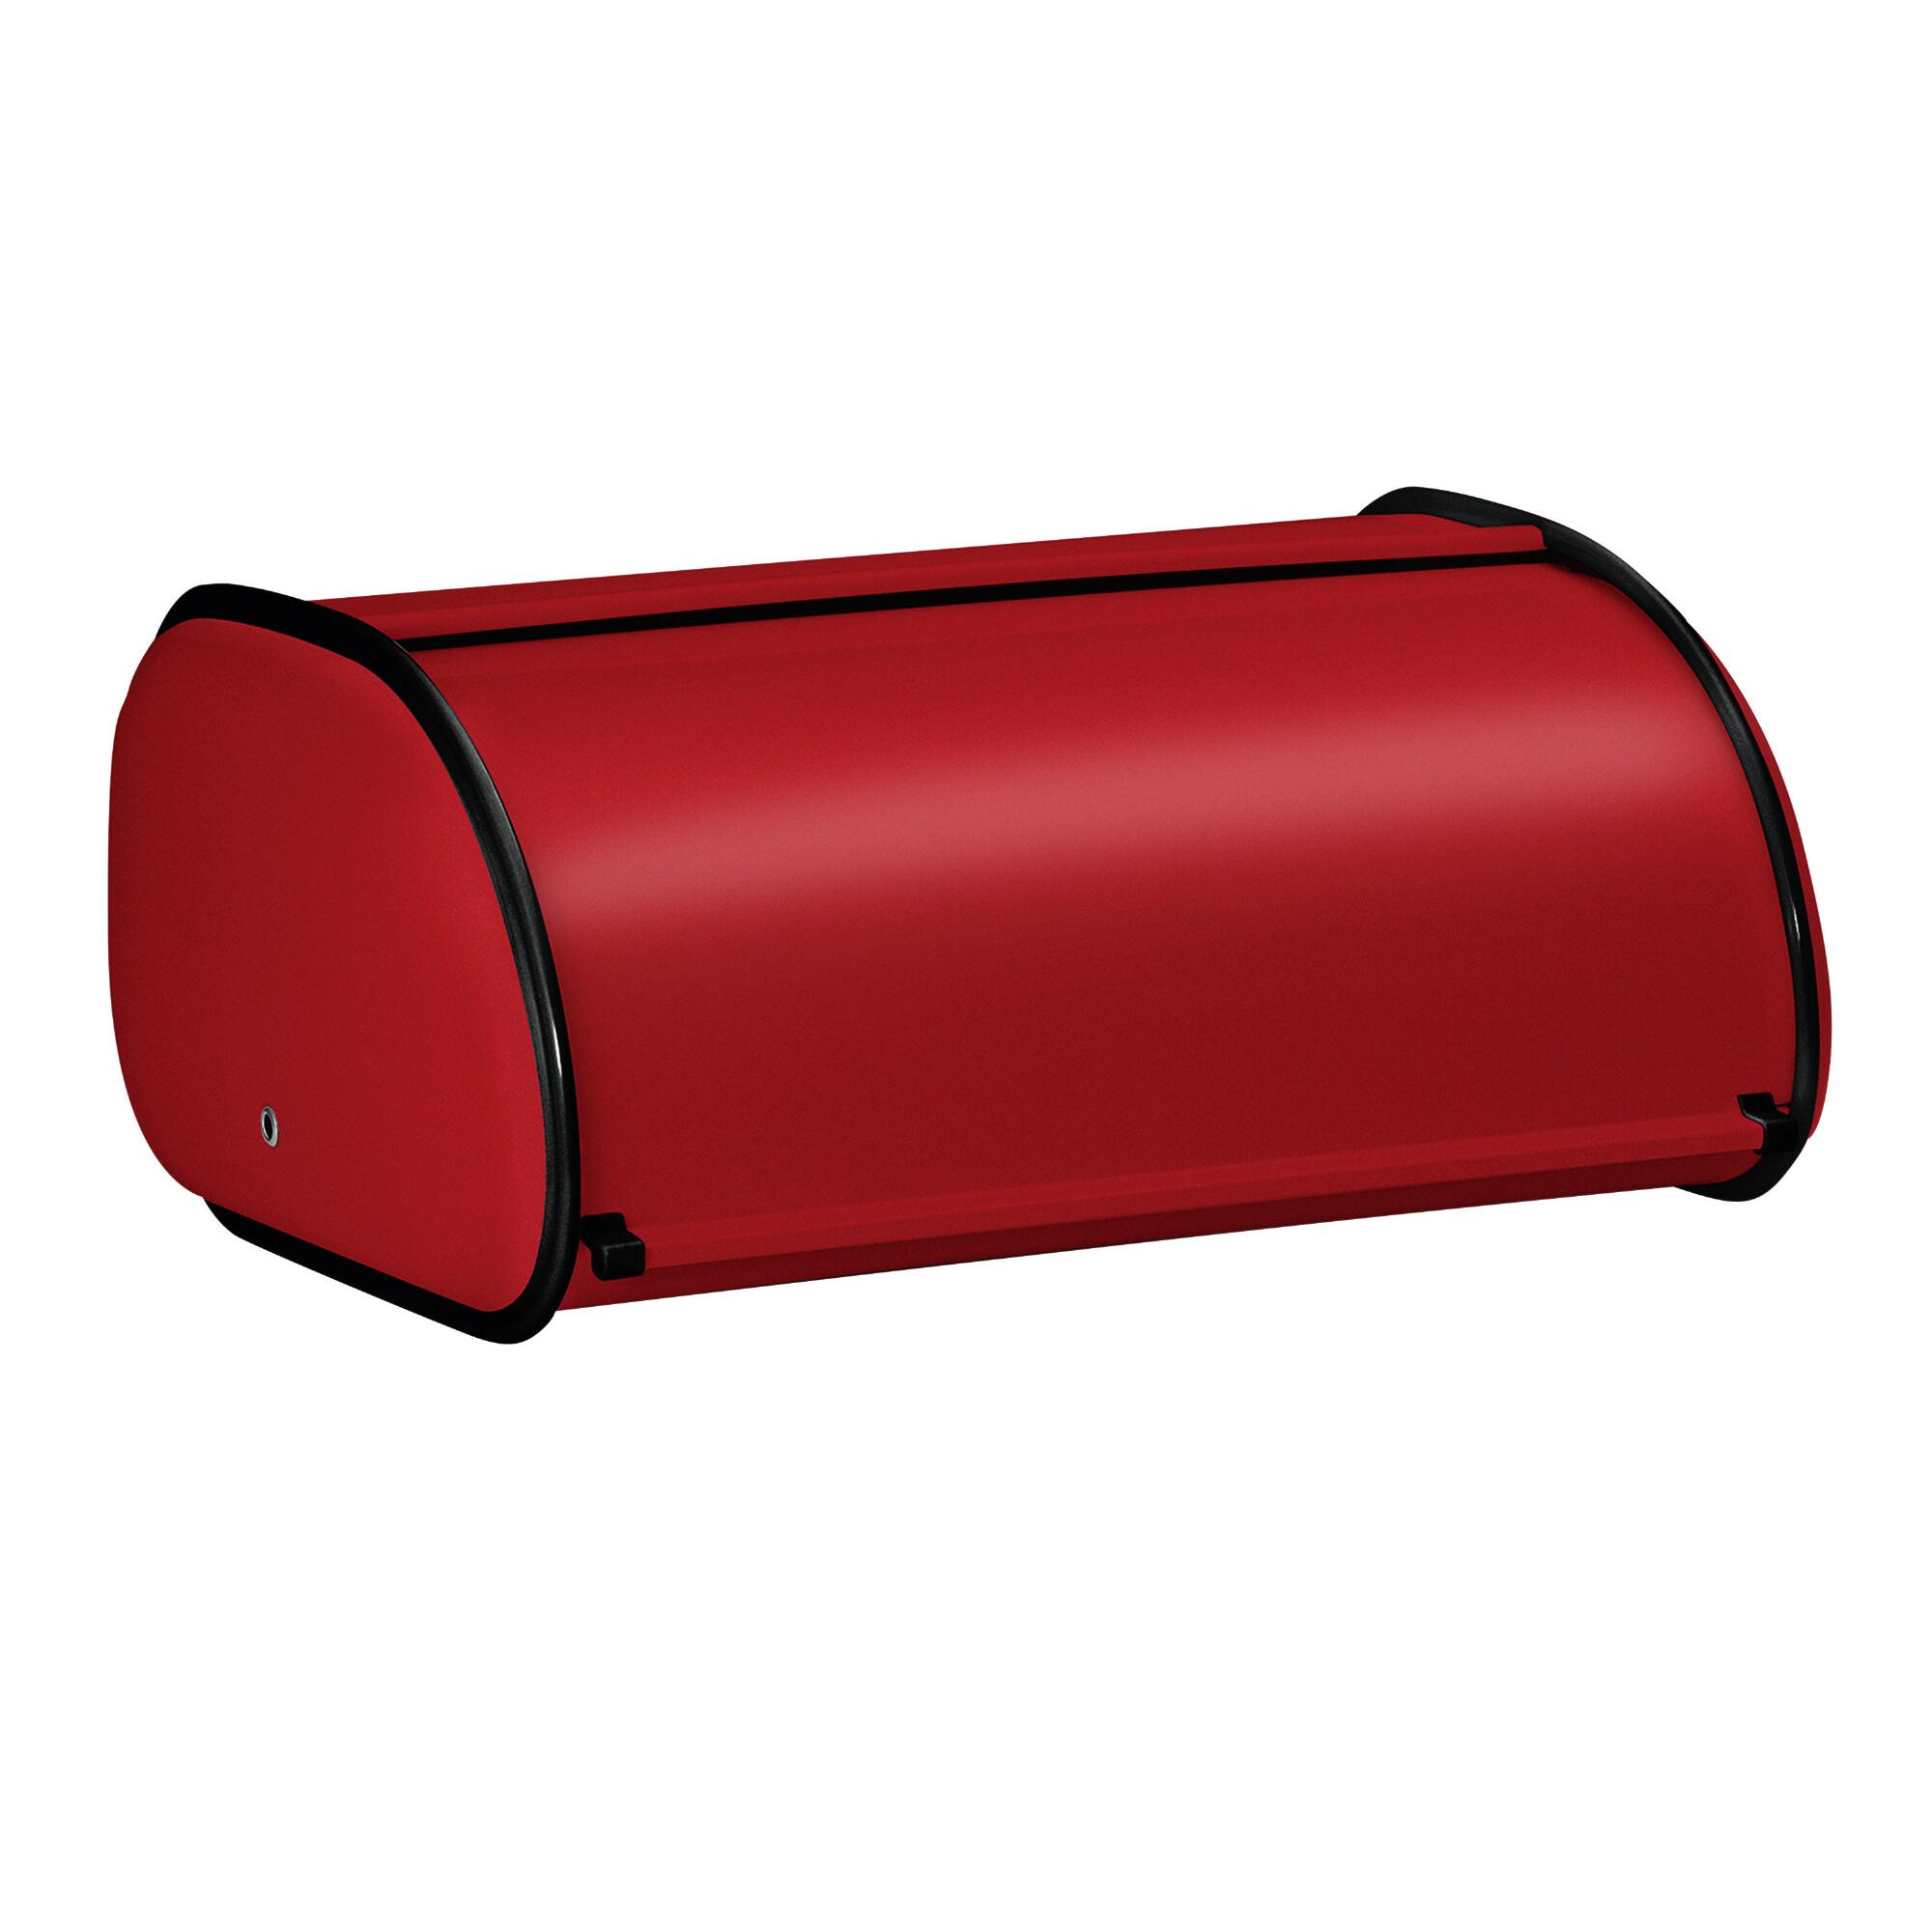 Red Stainless Steel Bread Bin by World Market